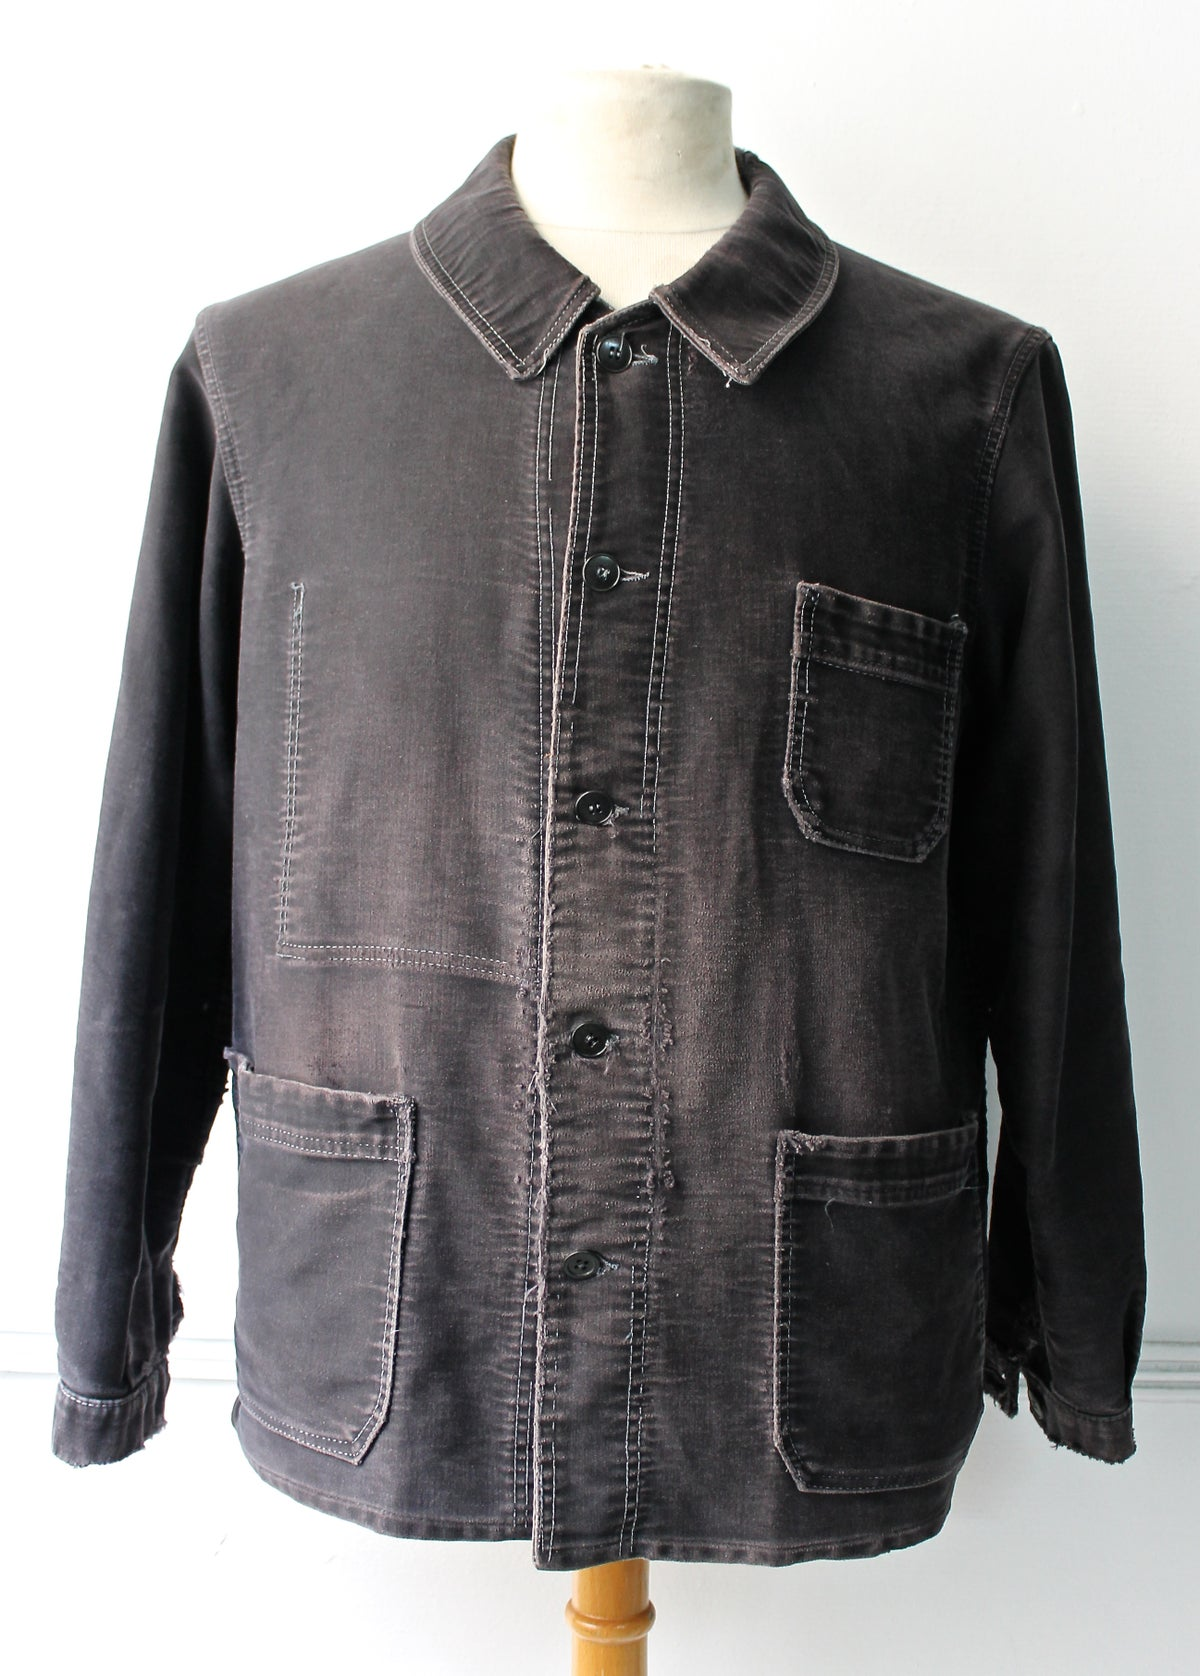 Image of 1920'S FRENCH BLACK MOLESKIN WORK JACKET FADED